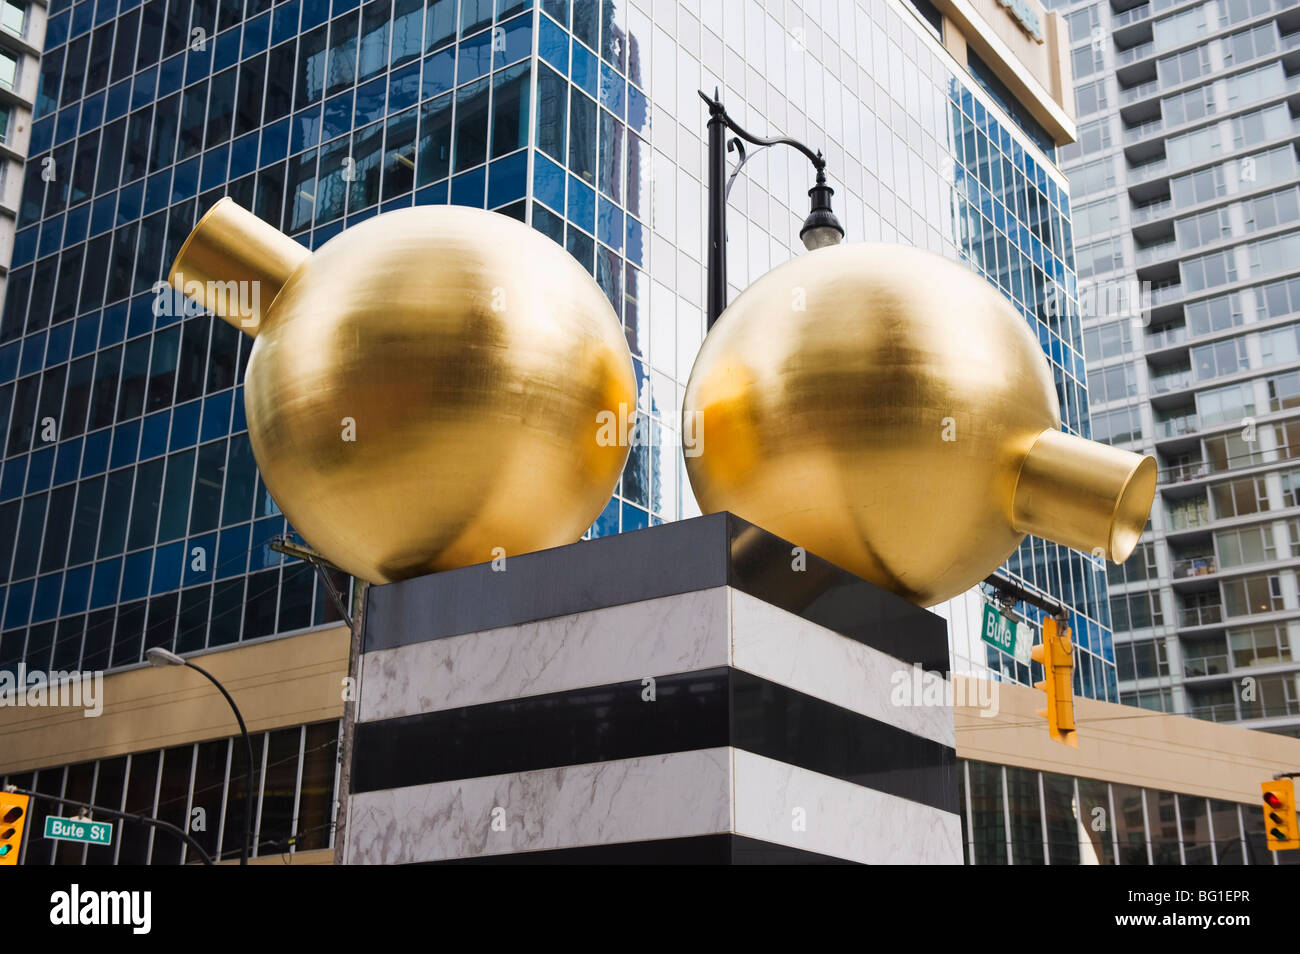 Gold ball monument, downtown, Vancouver, British Columbia, Canada, North America - Stock Image